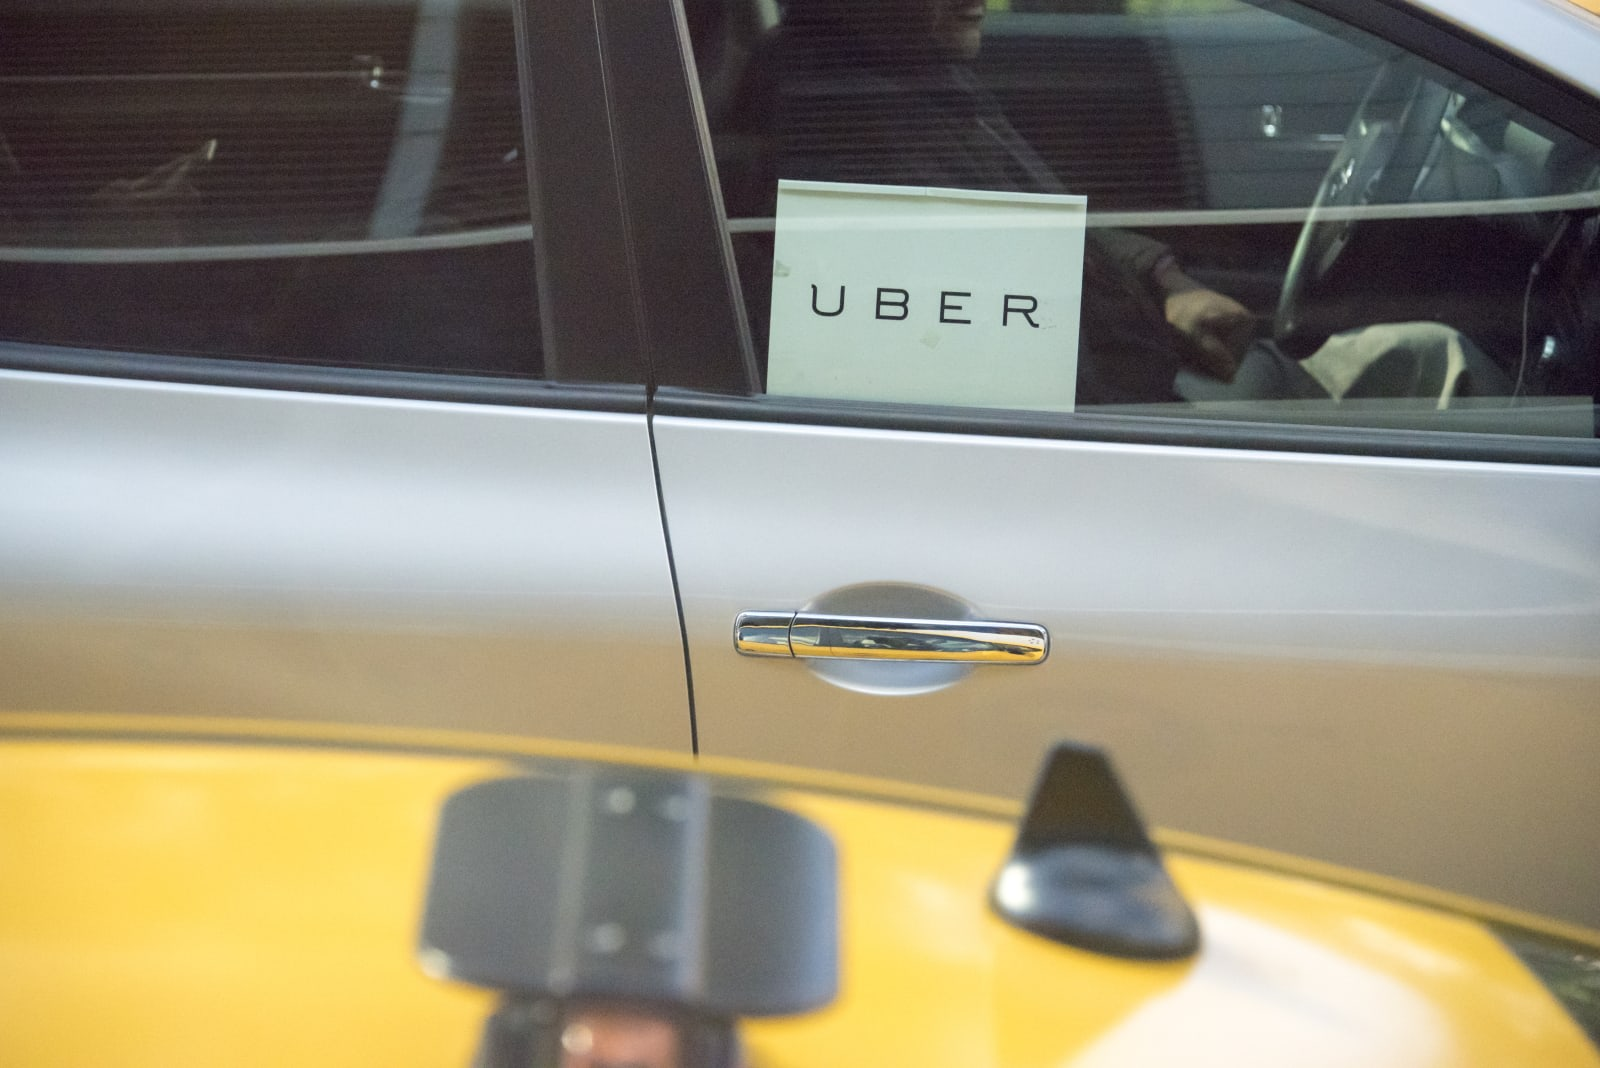 Uber will pay New York drivers $3 million in class-action settlement